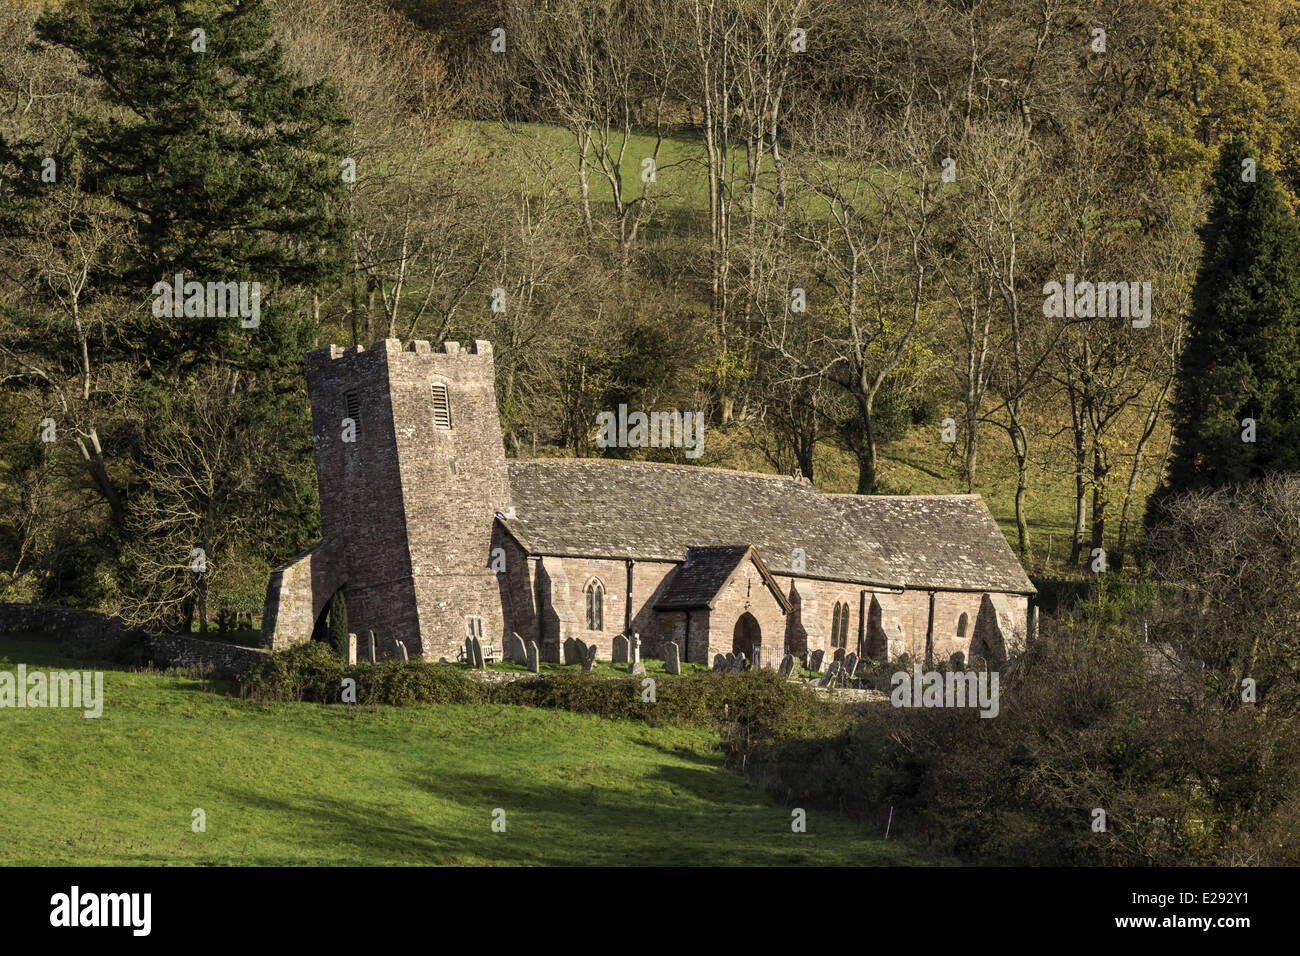 Church with leaning tower caused by subsidence, Church of St. Martin, Cwmyoy, Llantony Valley, Brecon Beacons N.P., - Stock Image